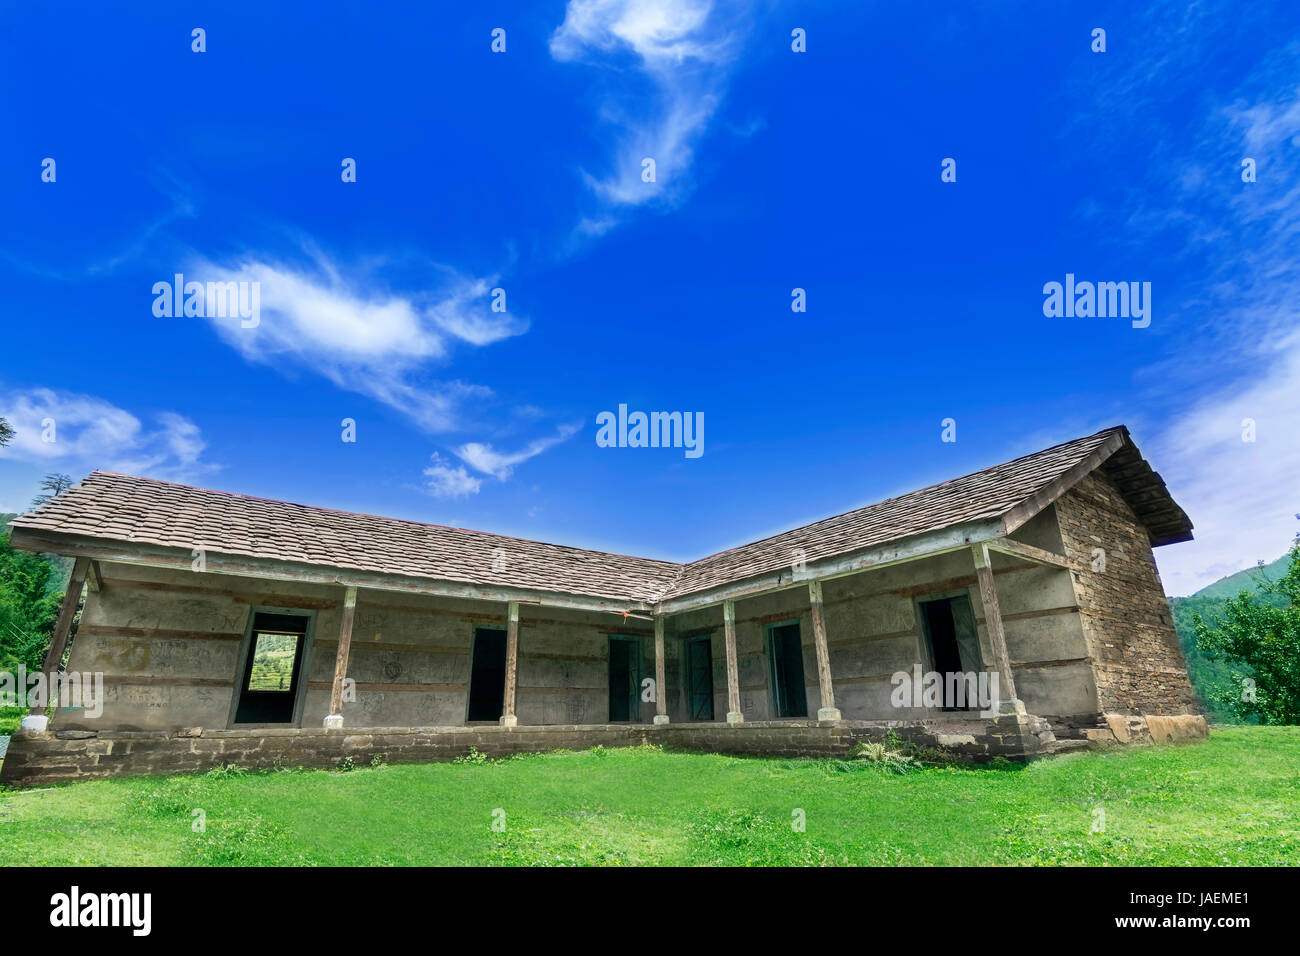 An old abandoned wooden house in the interior town of Himachal Pradesh called Janjehli, India - Stock Image